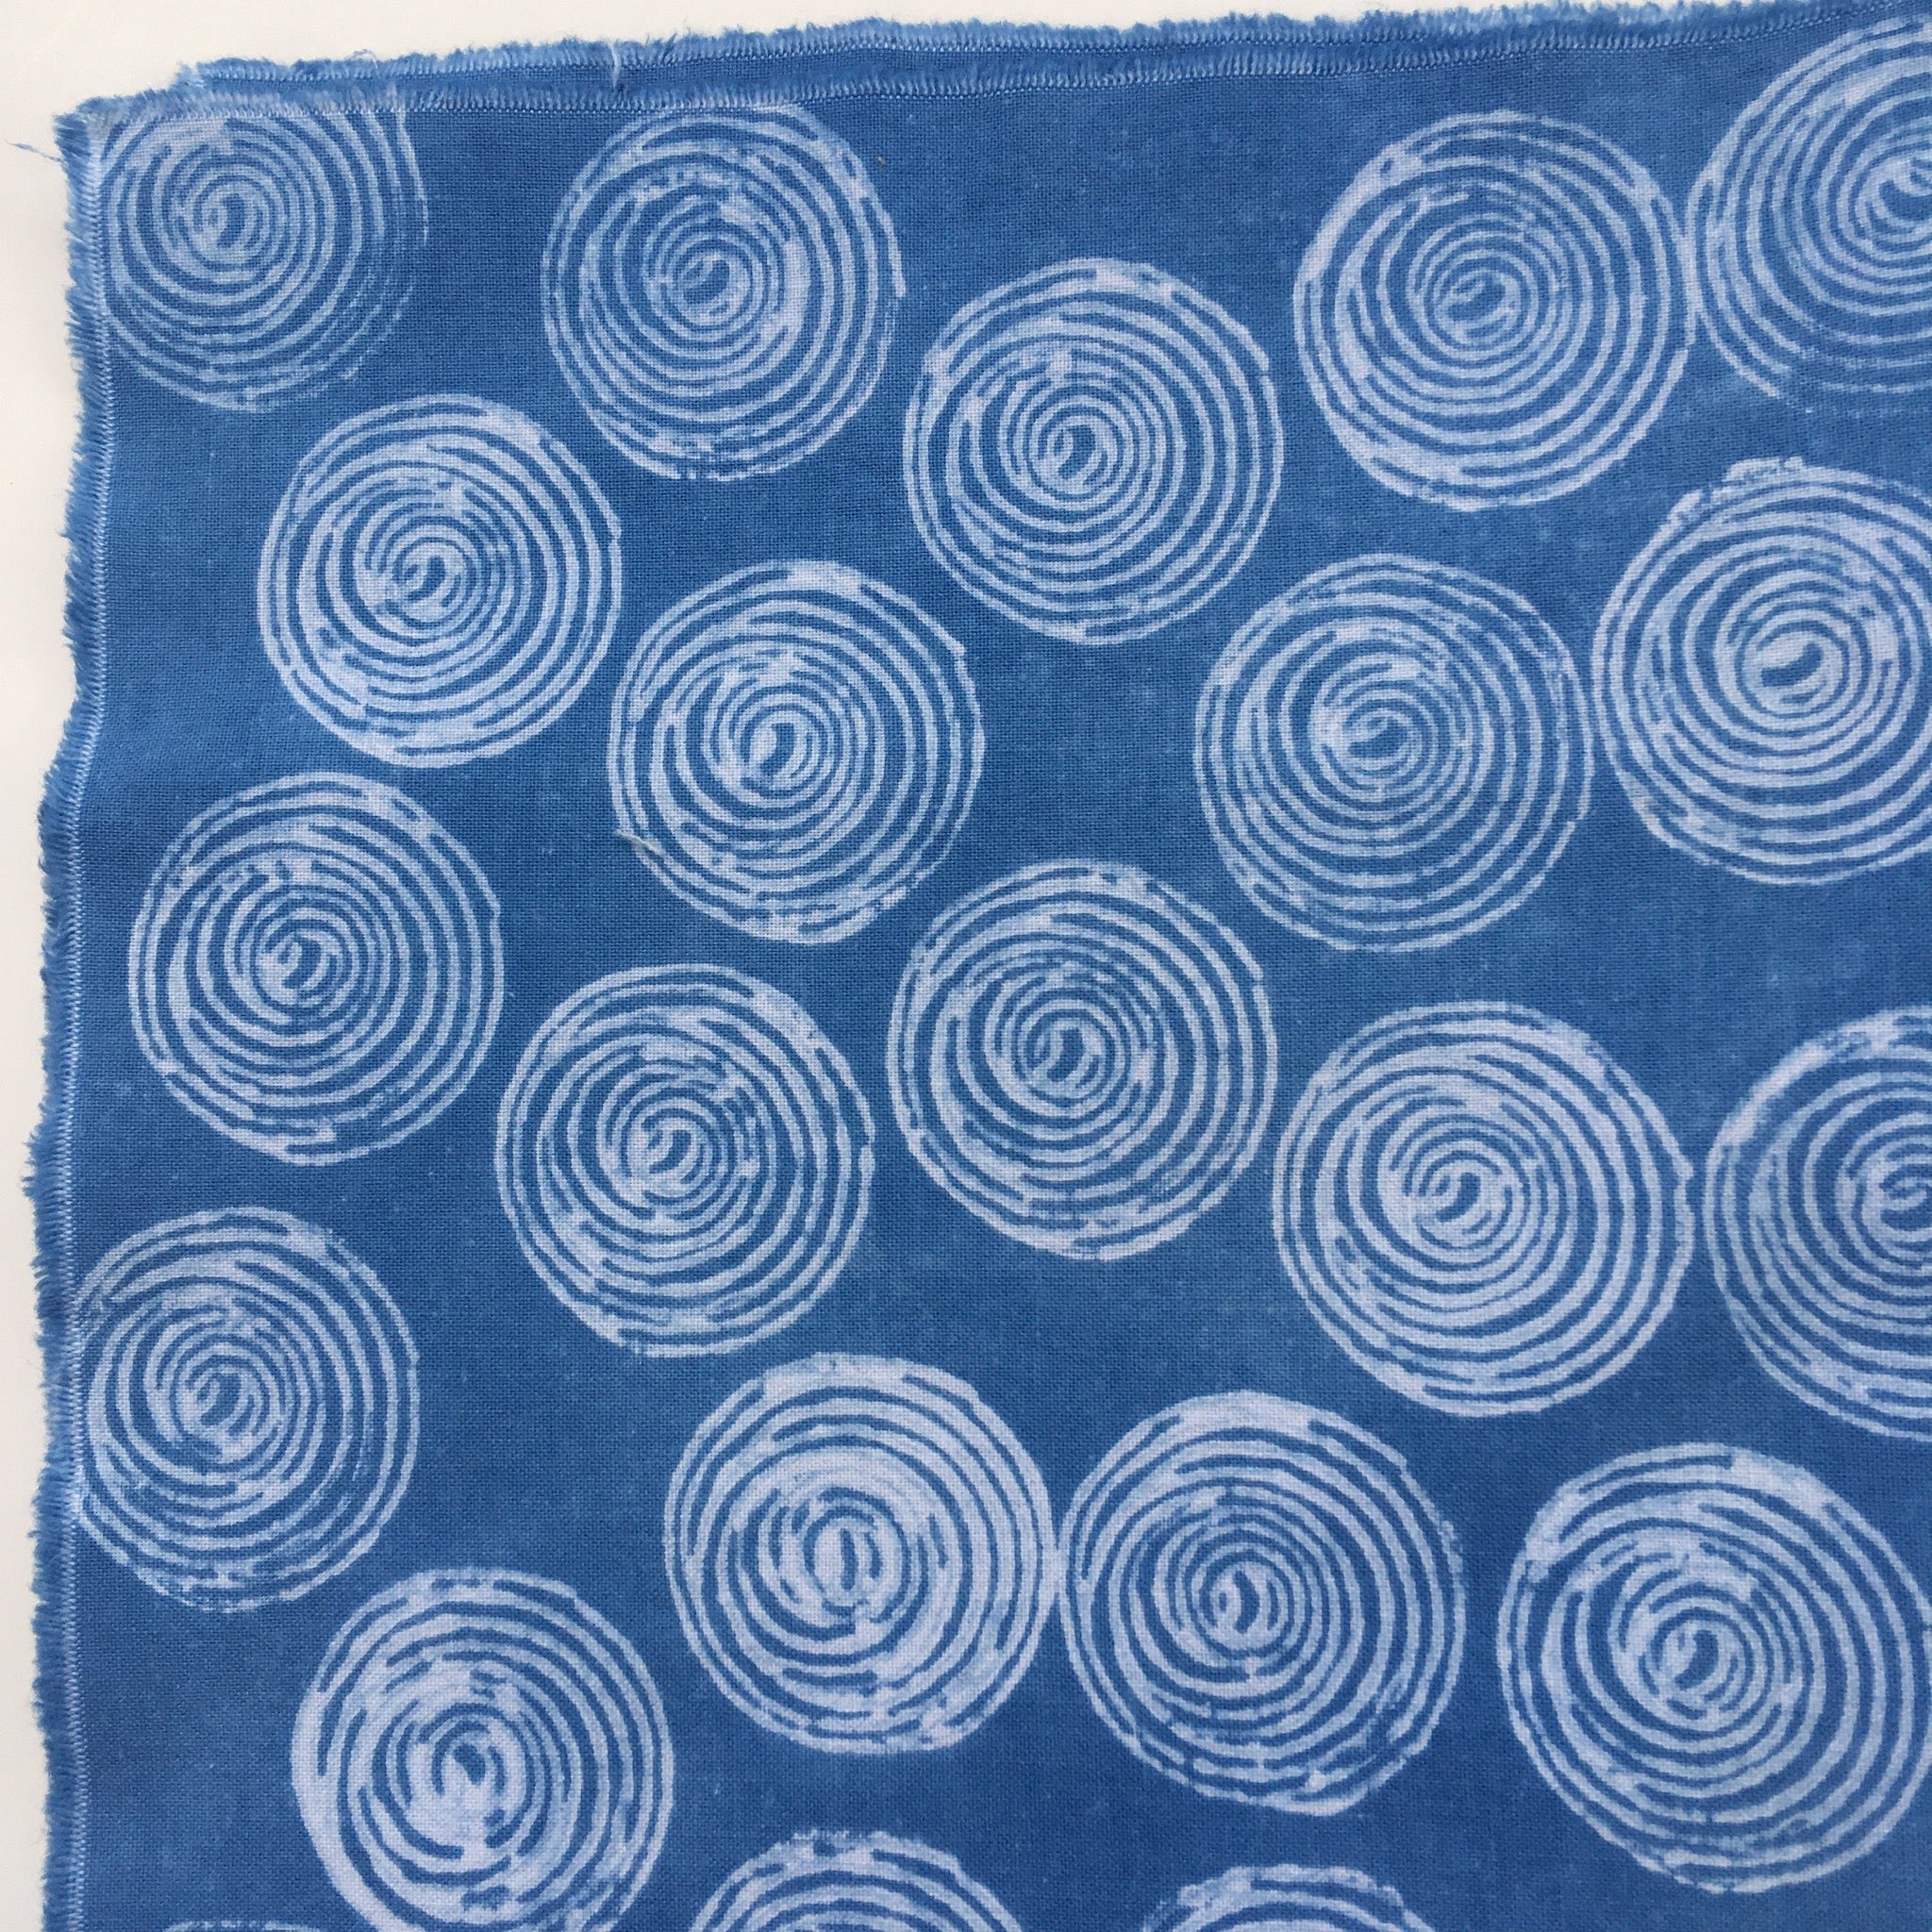 Fabric example dyed with clay resist: deep indigo blue with circular pattern in white.